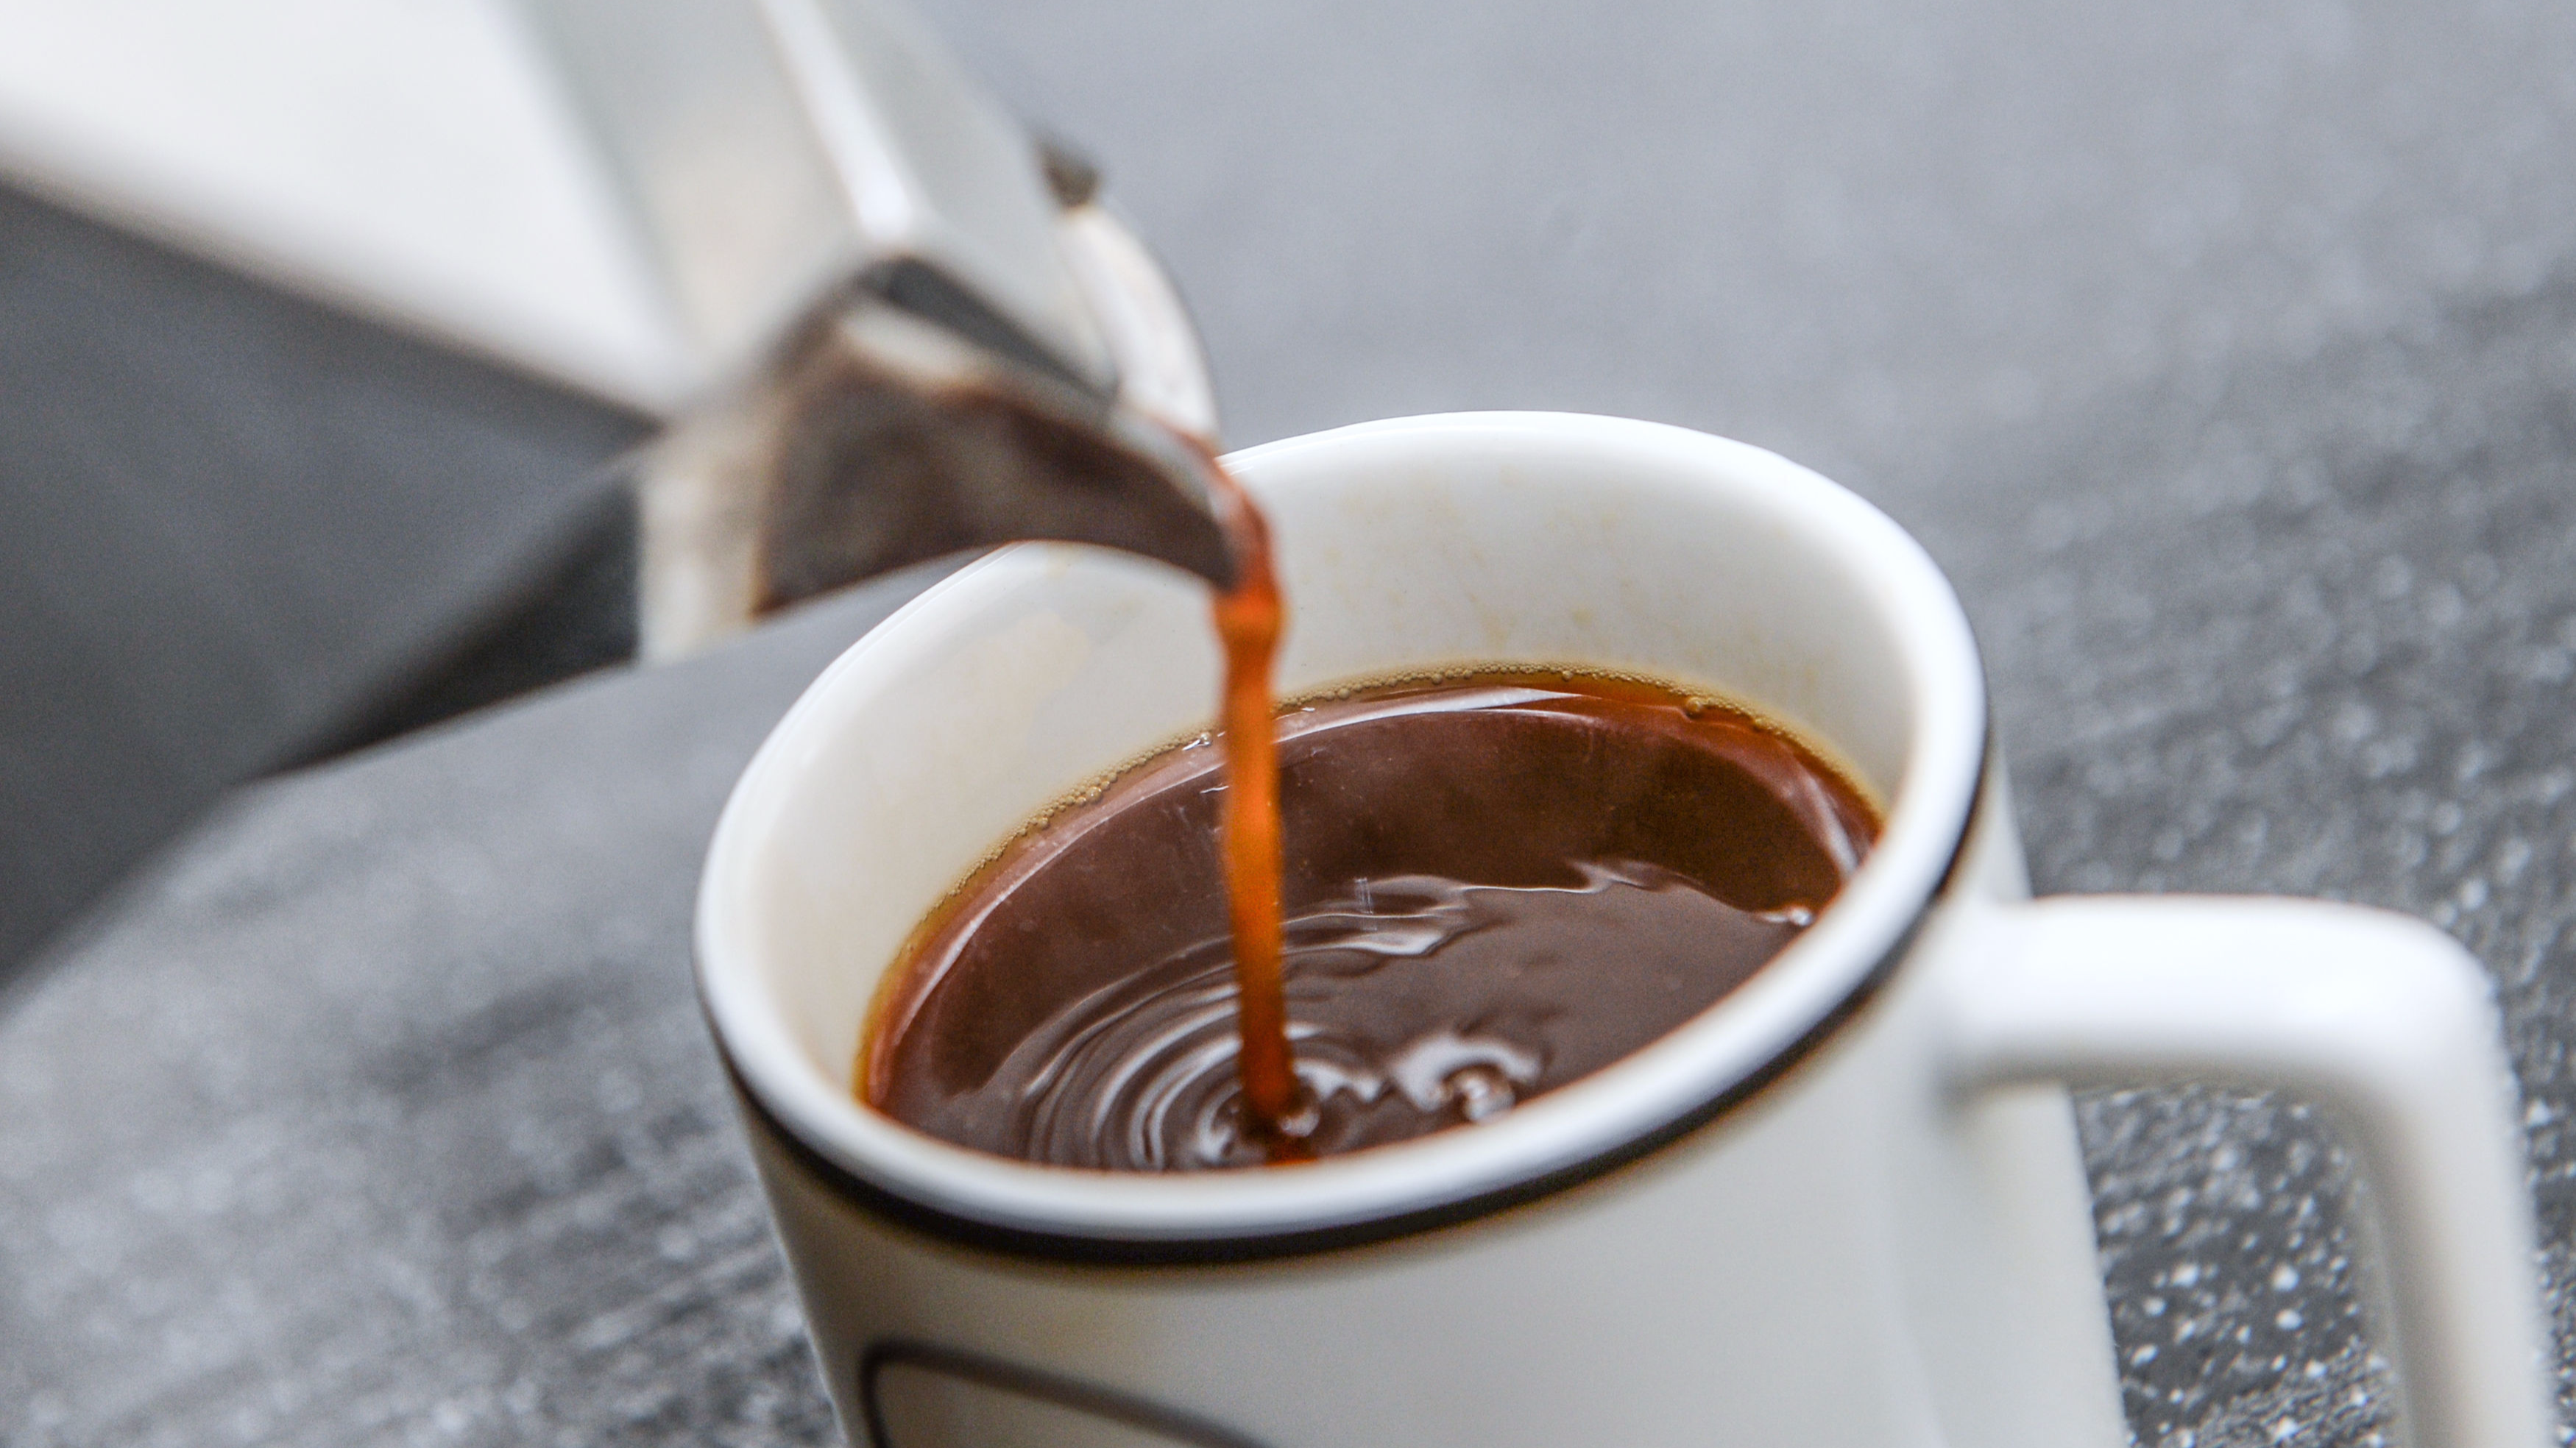 Large Review Of Studies Finds Three To Four Cups Of Coffee A Day Are Beneficial